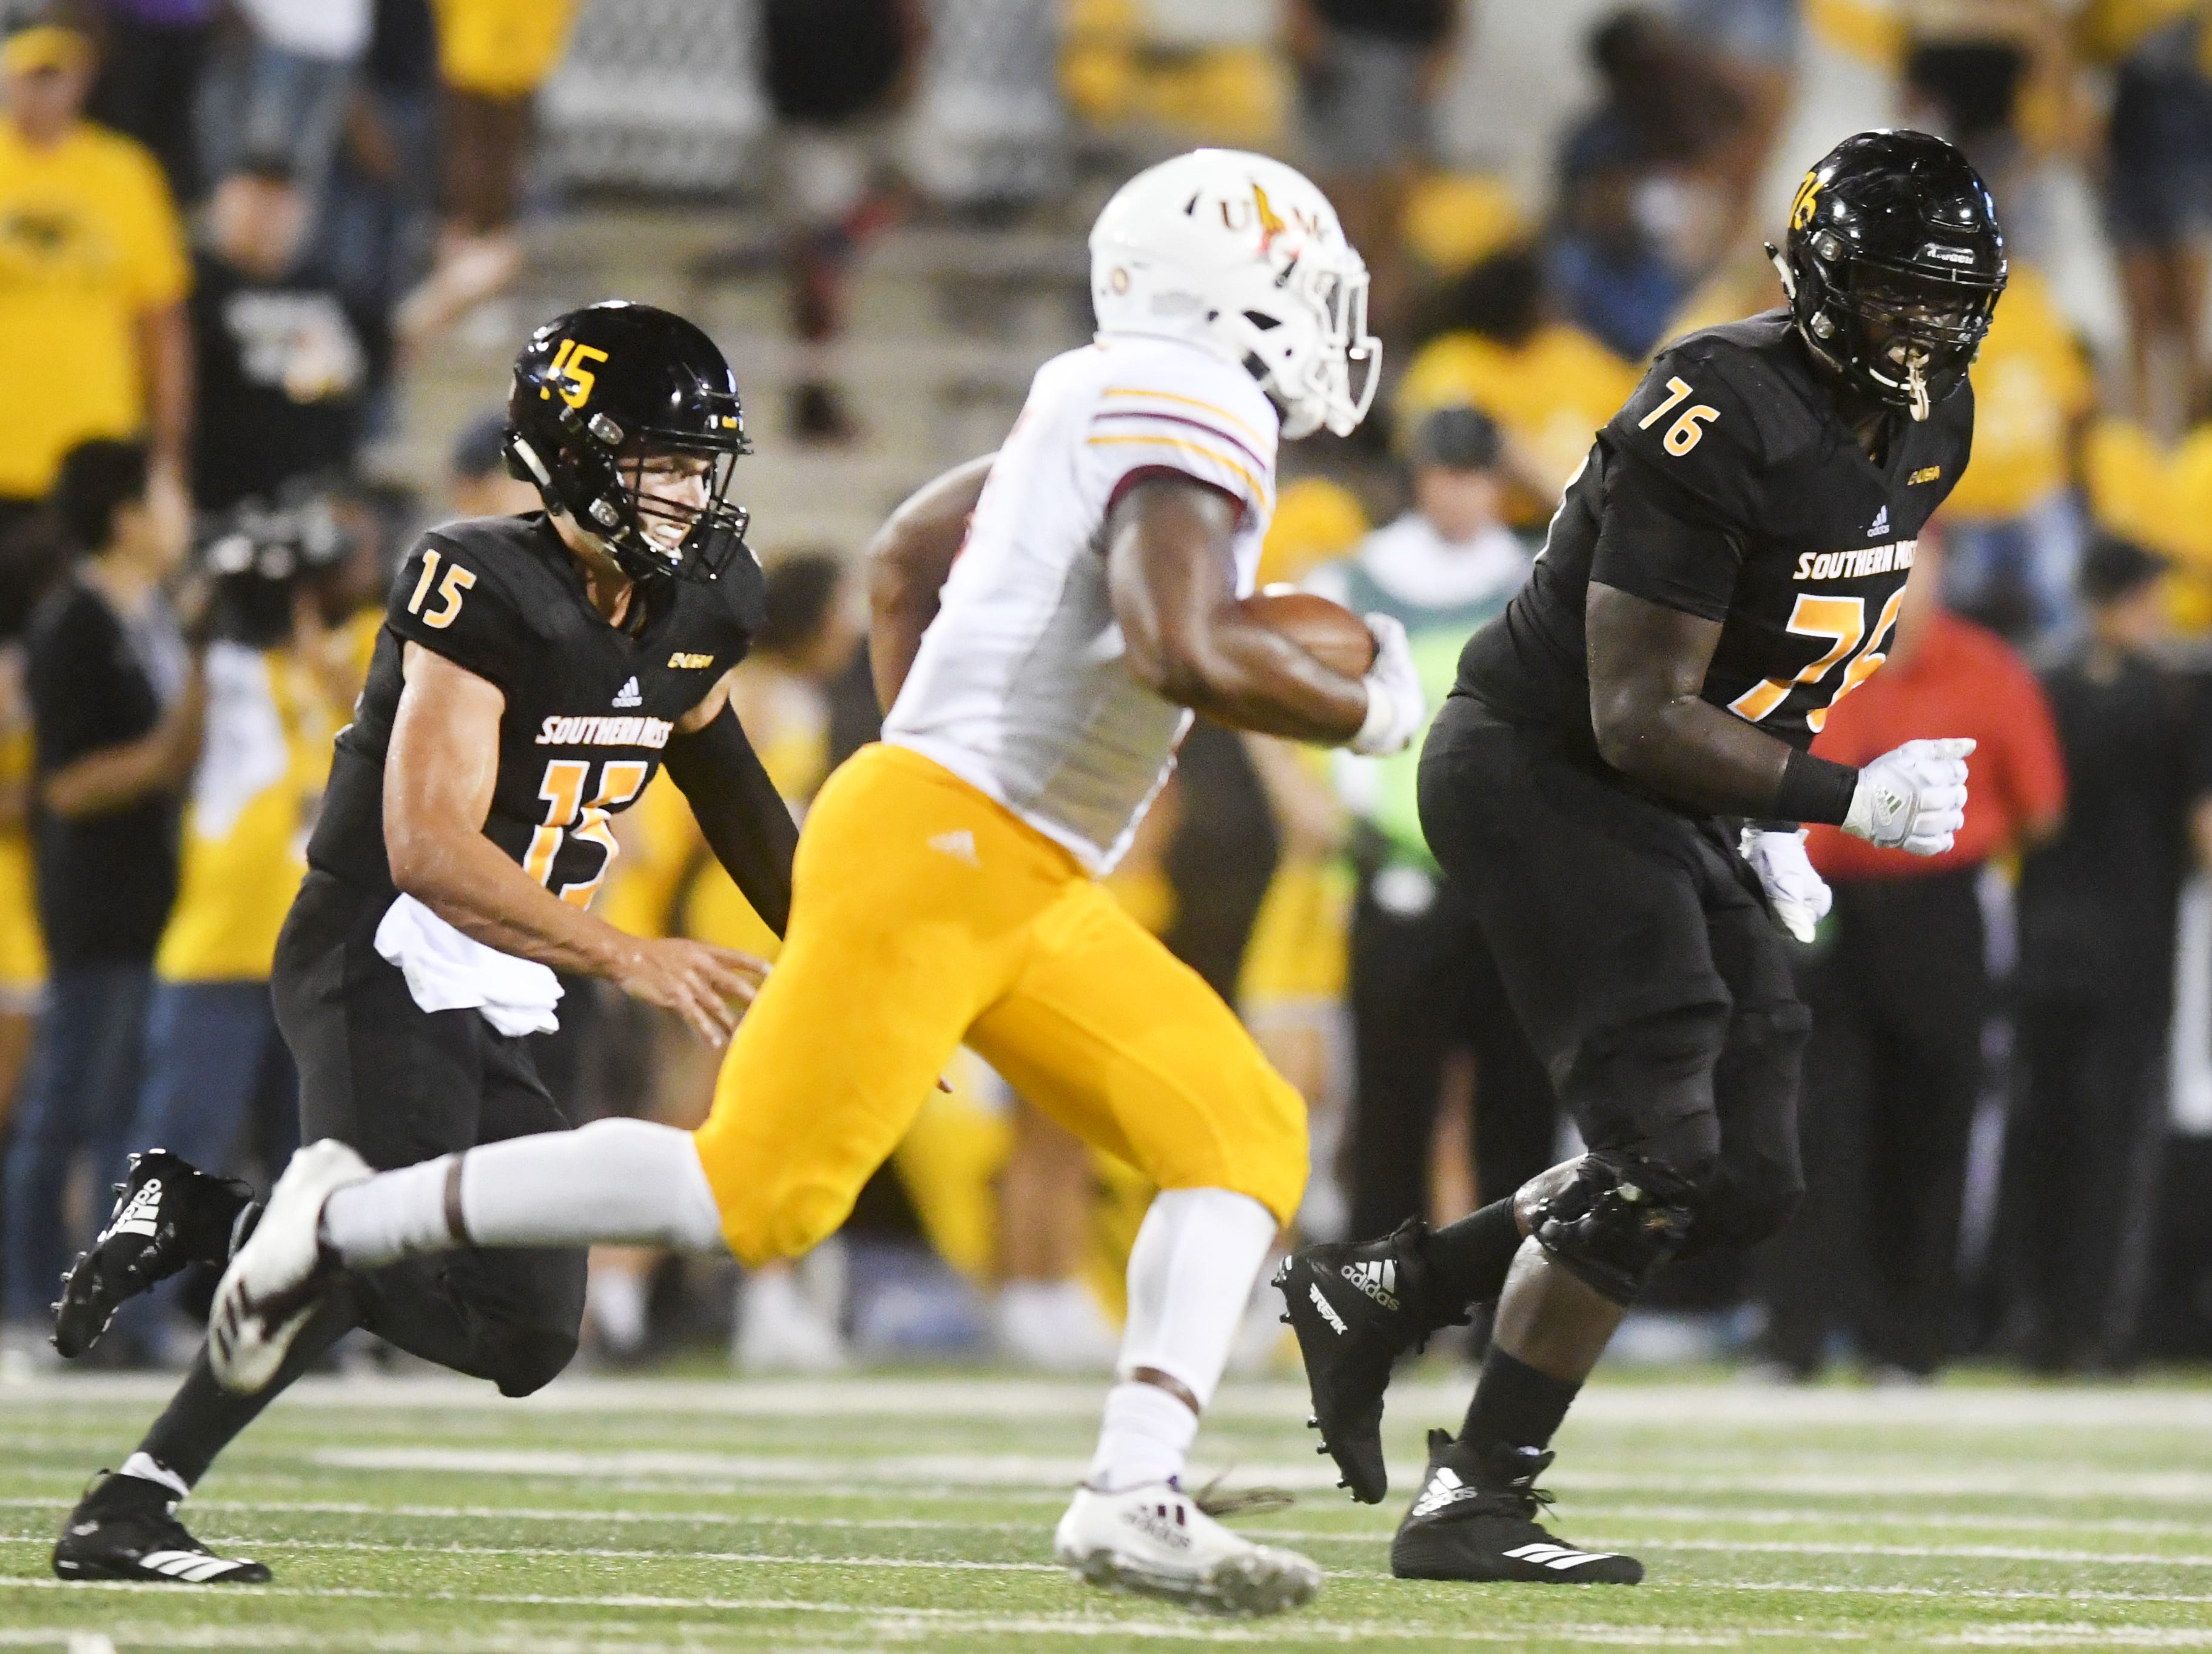 Southern Miss quarterback Jack Abraham, left, and offensive lineman Ty Pollard chase after ULM linebacker Cortez Sisco Jr. after an interception in M.M. Roberts Stadium on Saturday, September 8, 2018. The Eagles fall to the Warhawks, 20-21.